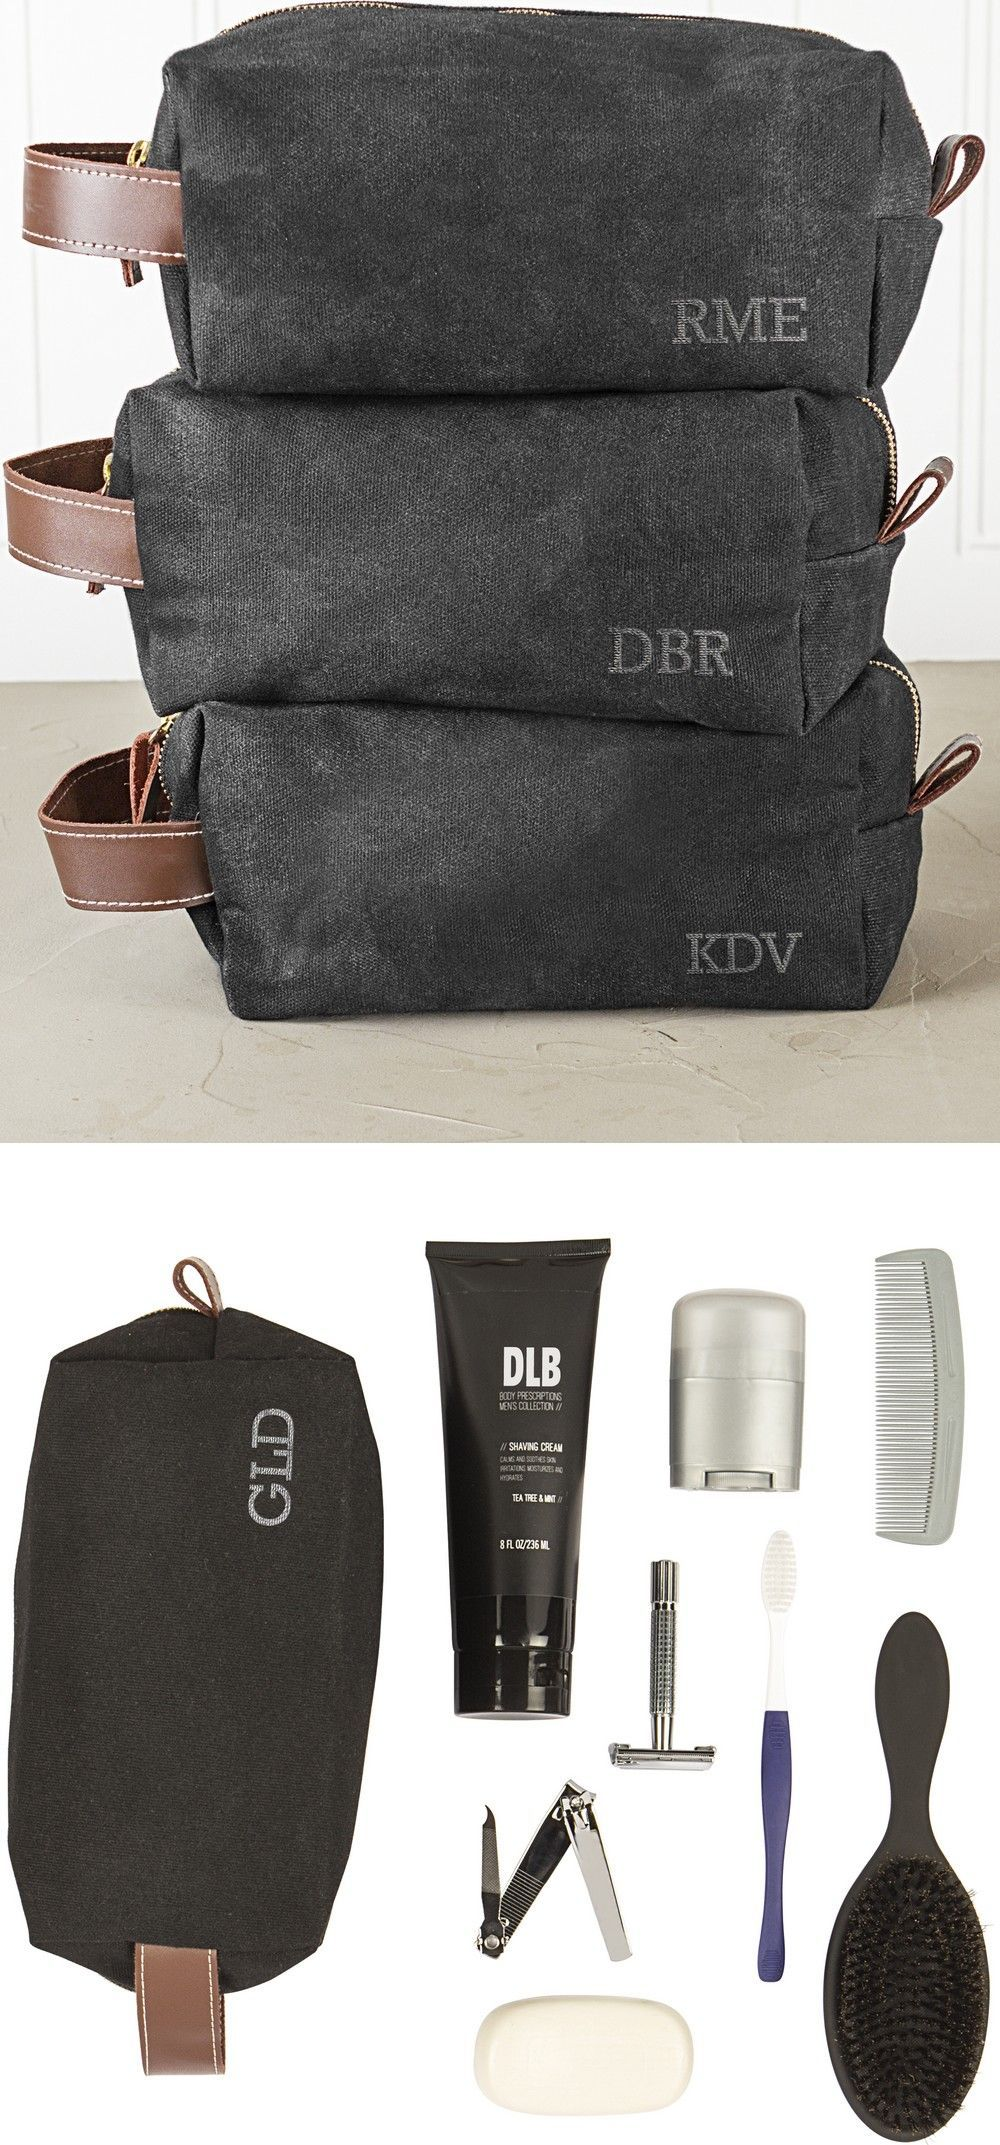 Men appreciate gifts they can use. A toiletry travel bag personalized with  his initials and filled with daily grooming essentials is a sure winner  that ... 2722738cf09cd